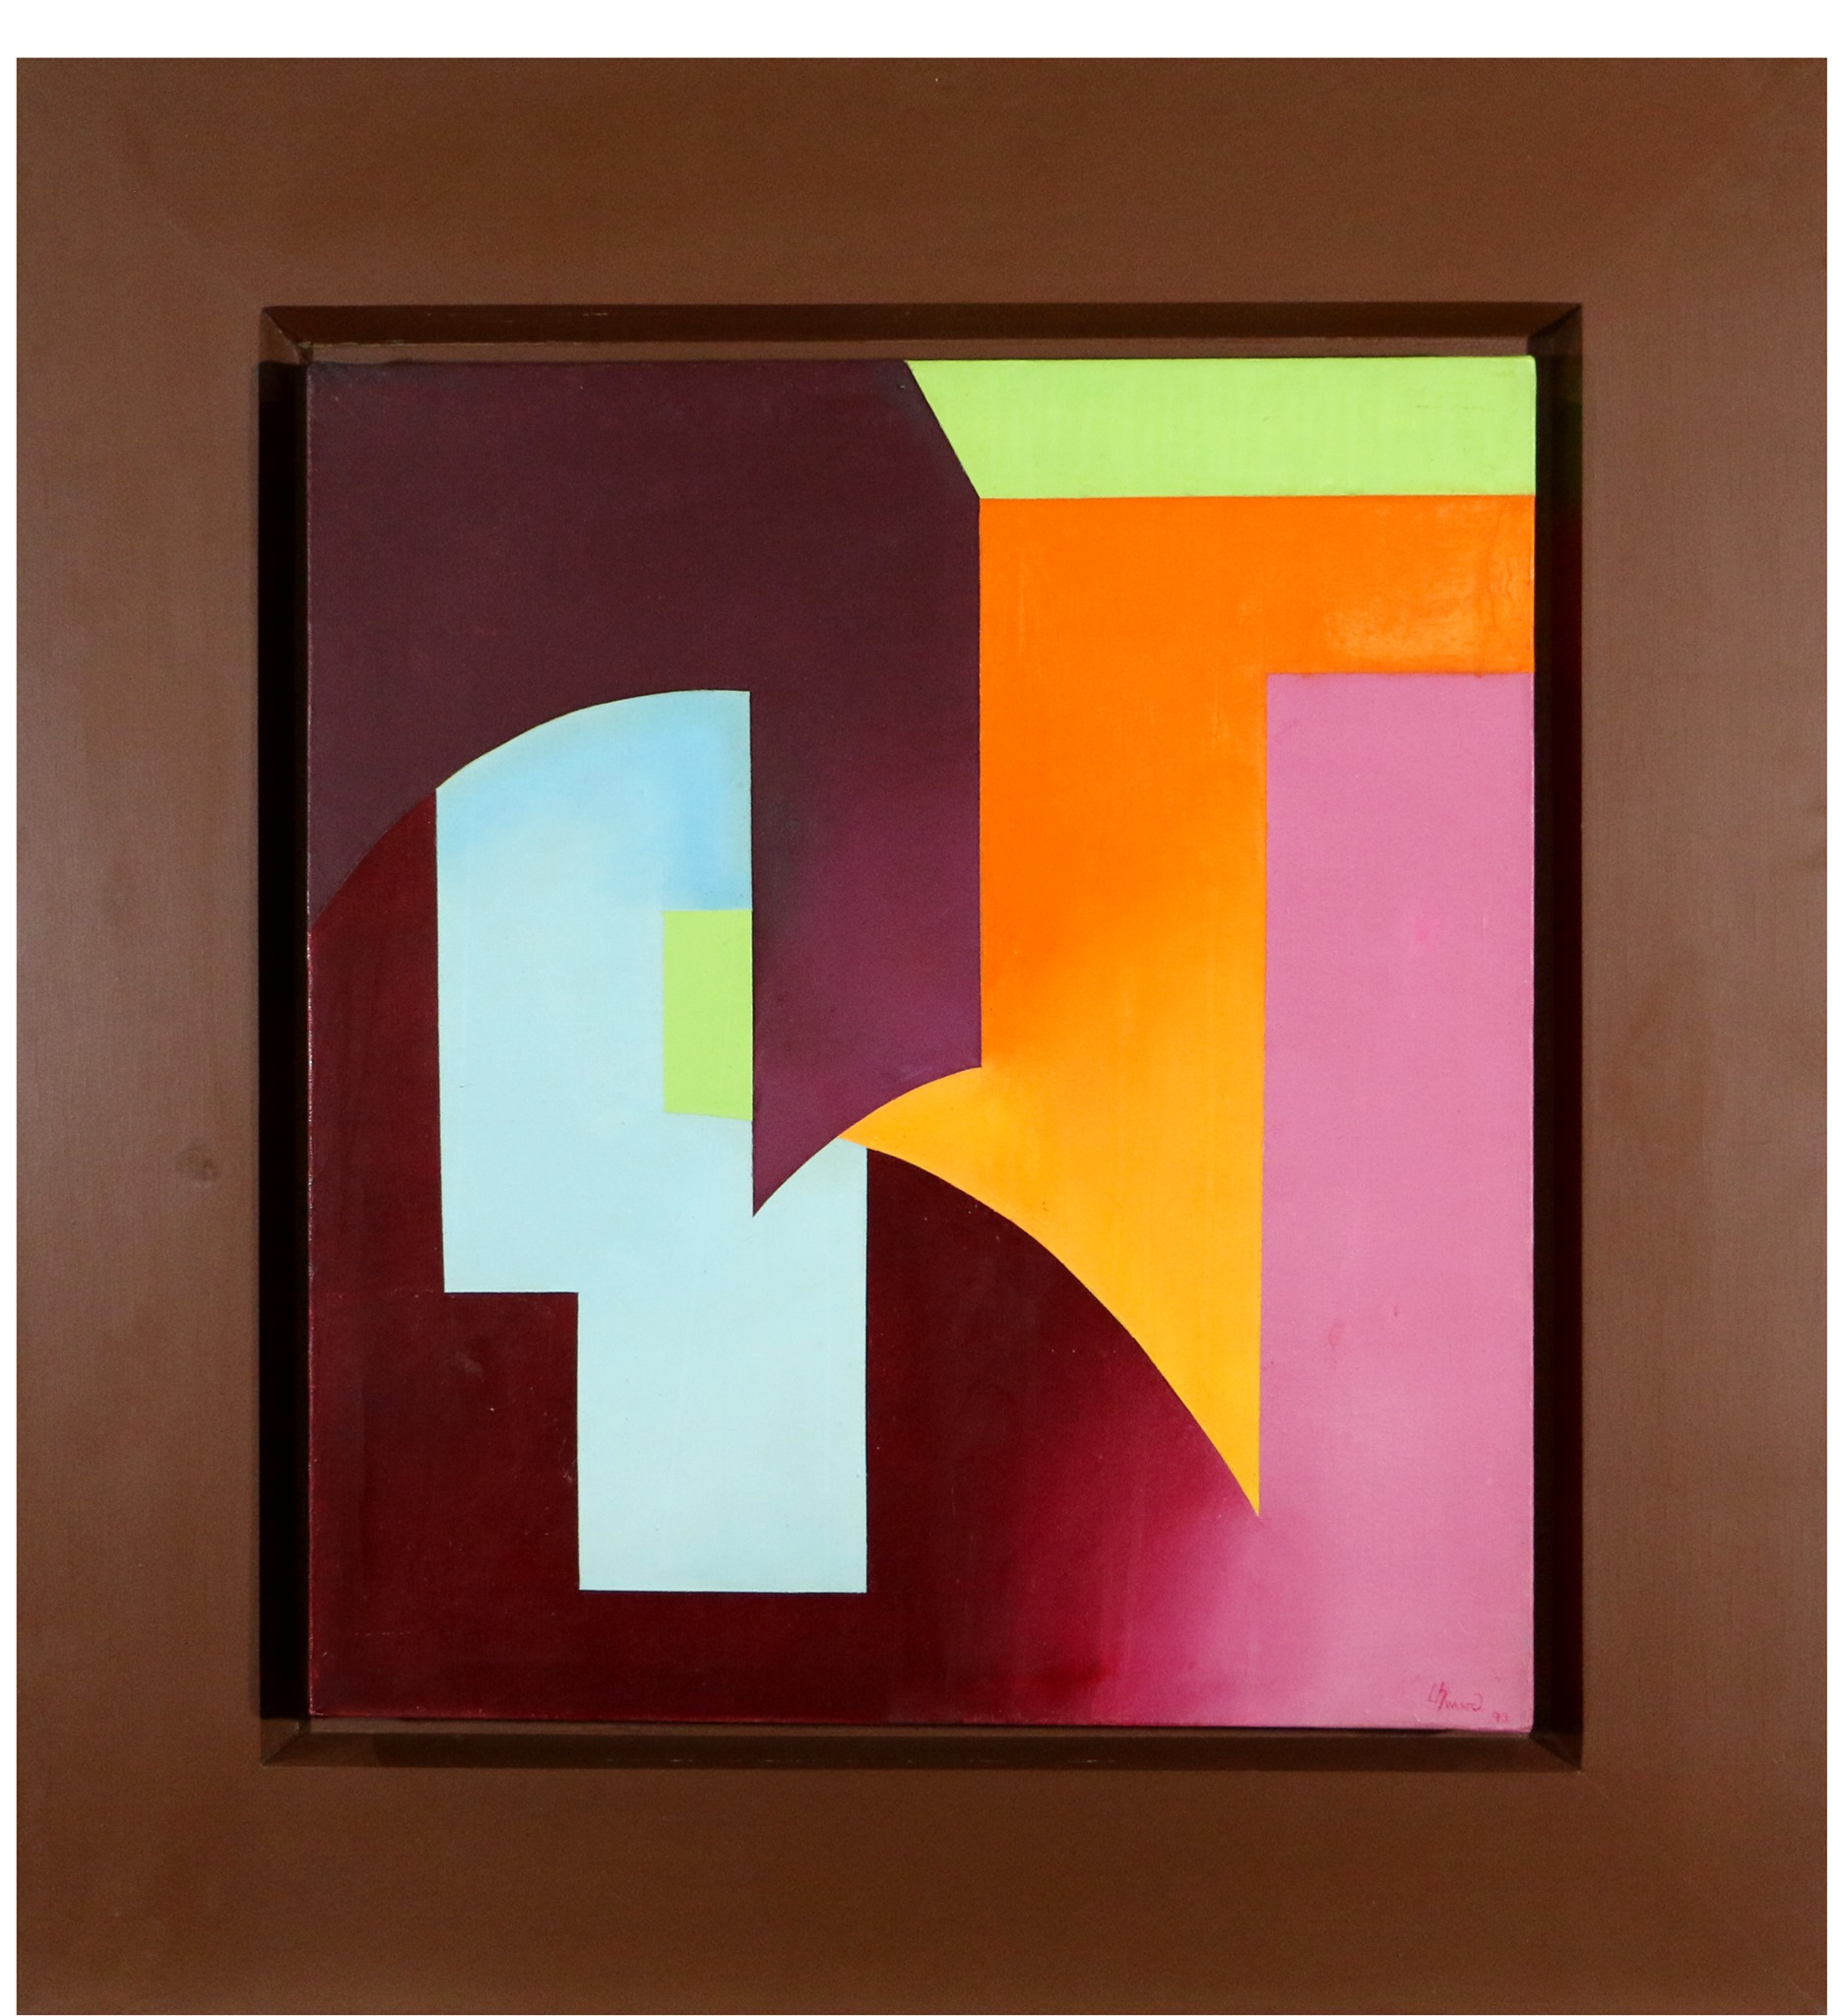 Painting Shocking Pink, Orange, Maroon (1974) by Lilian Hwang